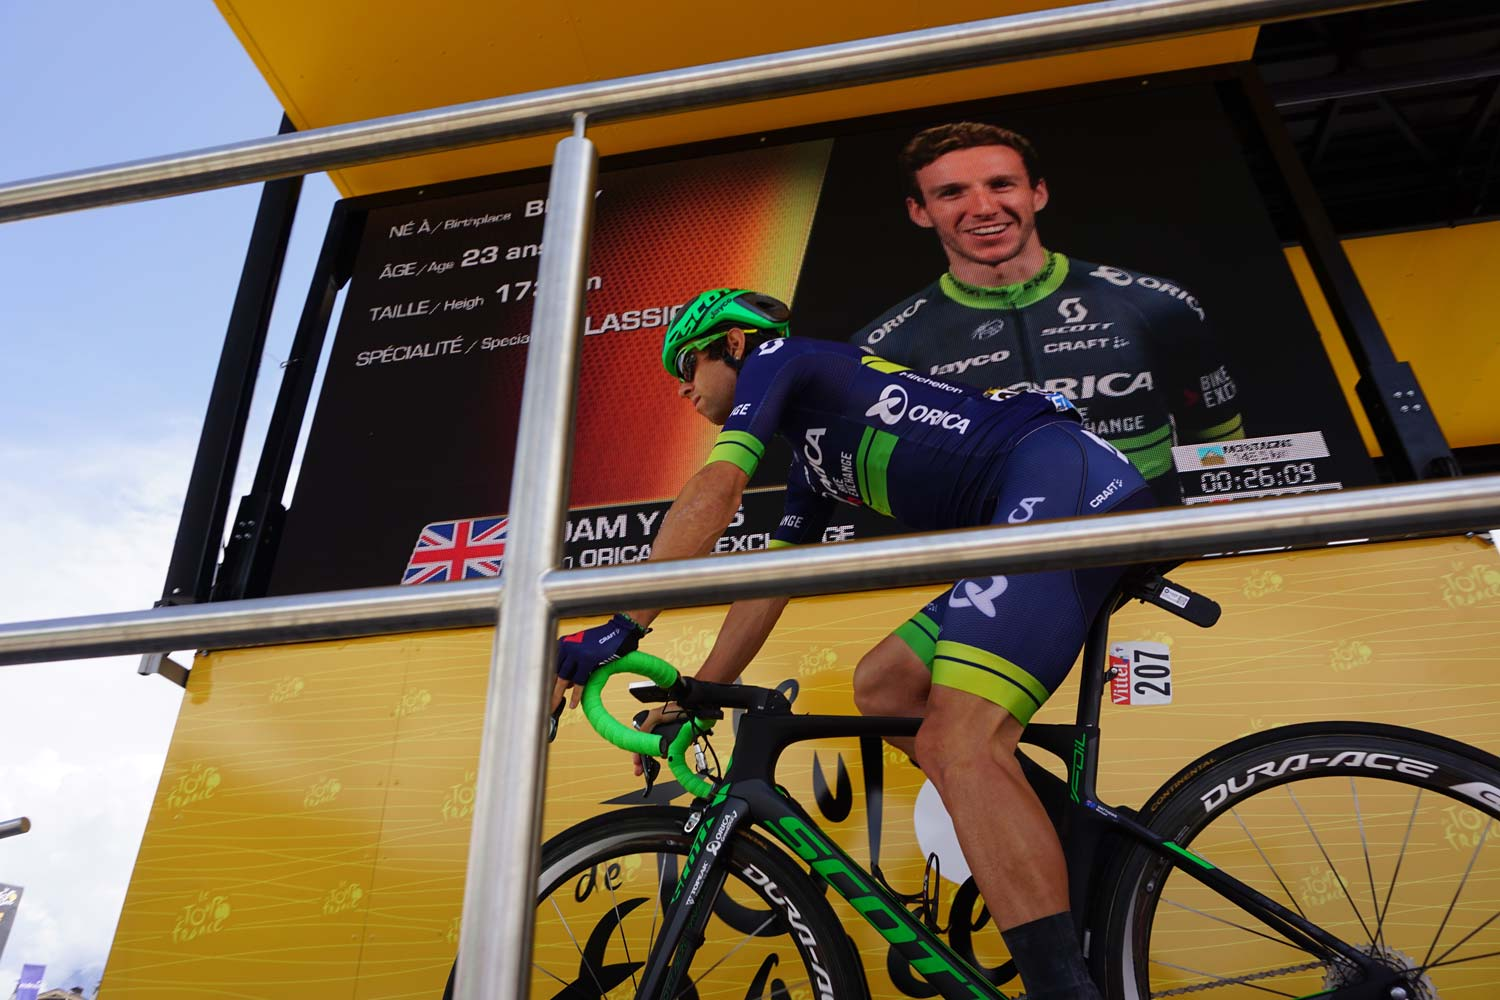 Two of the stars of OBE at the Tour de France in 2017 were Michael Matthews and Adam Yates.  The Australian won a stage, the Brit claimed the white jersey and finished fourth overall. But they will soon part ways as OBE shifts its focus and strives to become a true GC team... and Matthews sets off to Giant-Alpecin and the next phase of his career. Photo: Rob Arnold